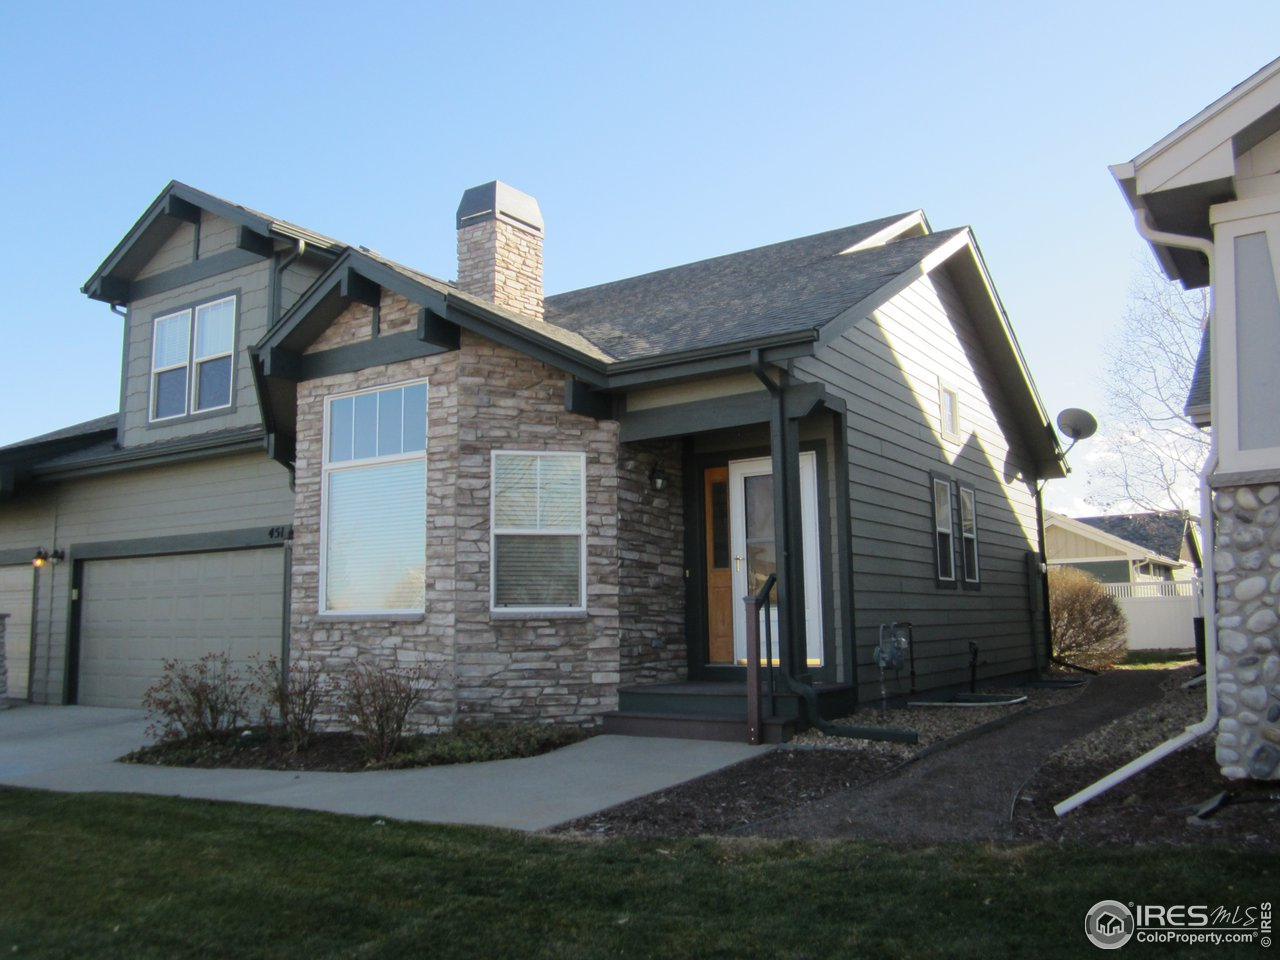 451 Olympia Ave, Longmont CO 80504